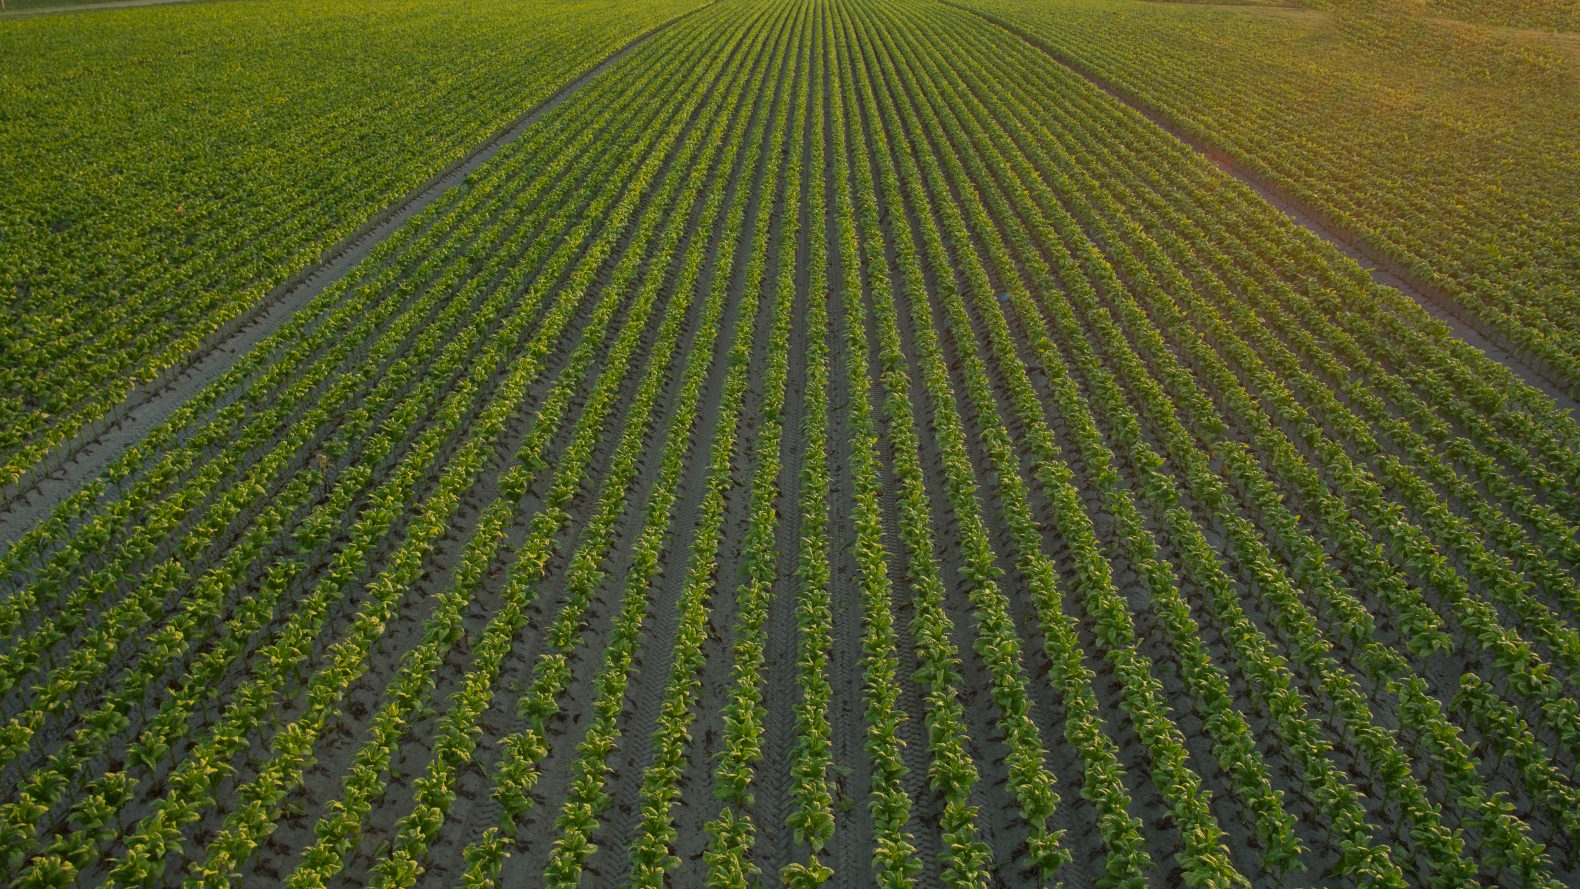 Perspective view of a field of rows of green crops.